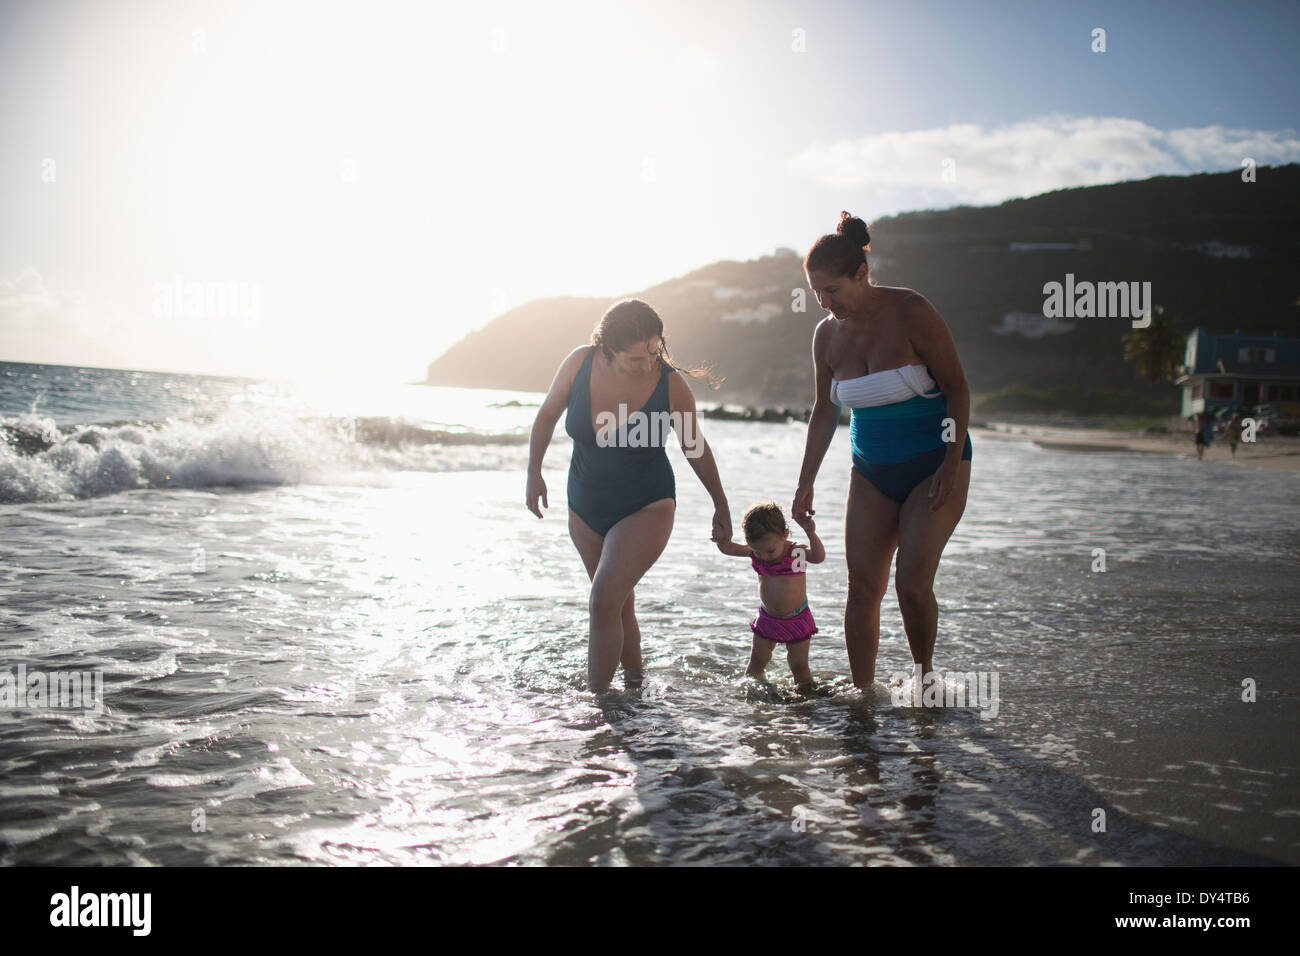 Toddler holding hands with mother and grandmother, walking in sea - Stock Image